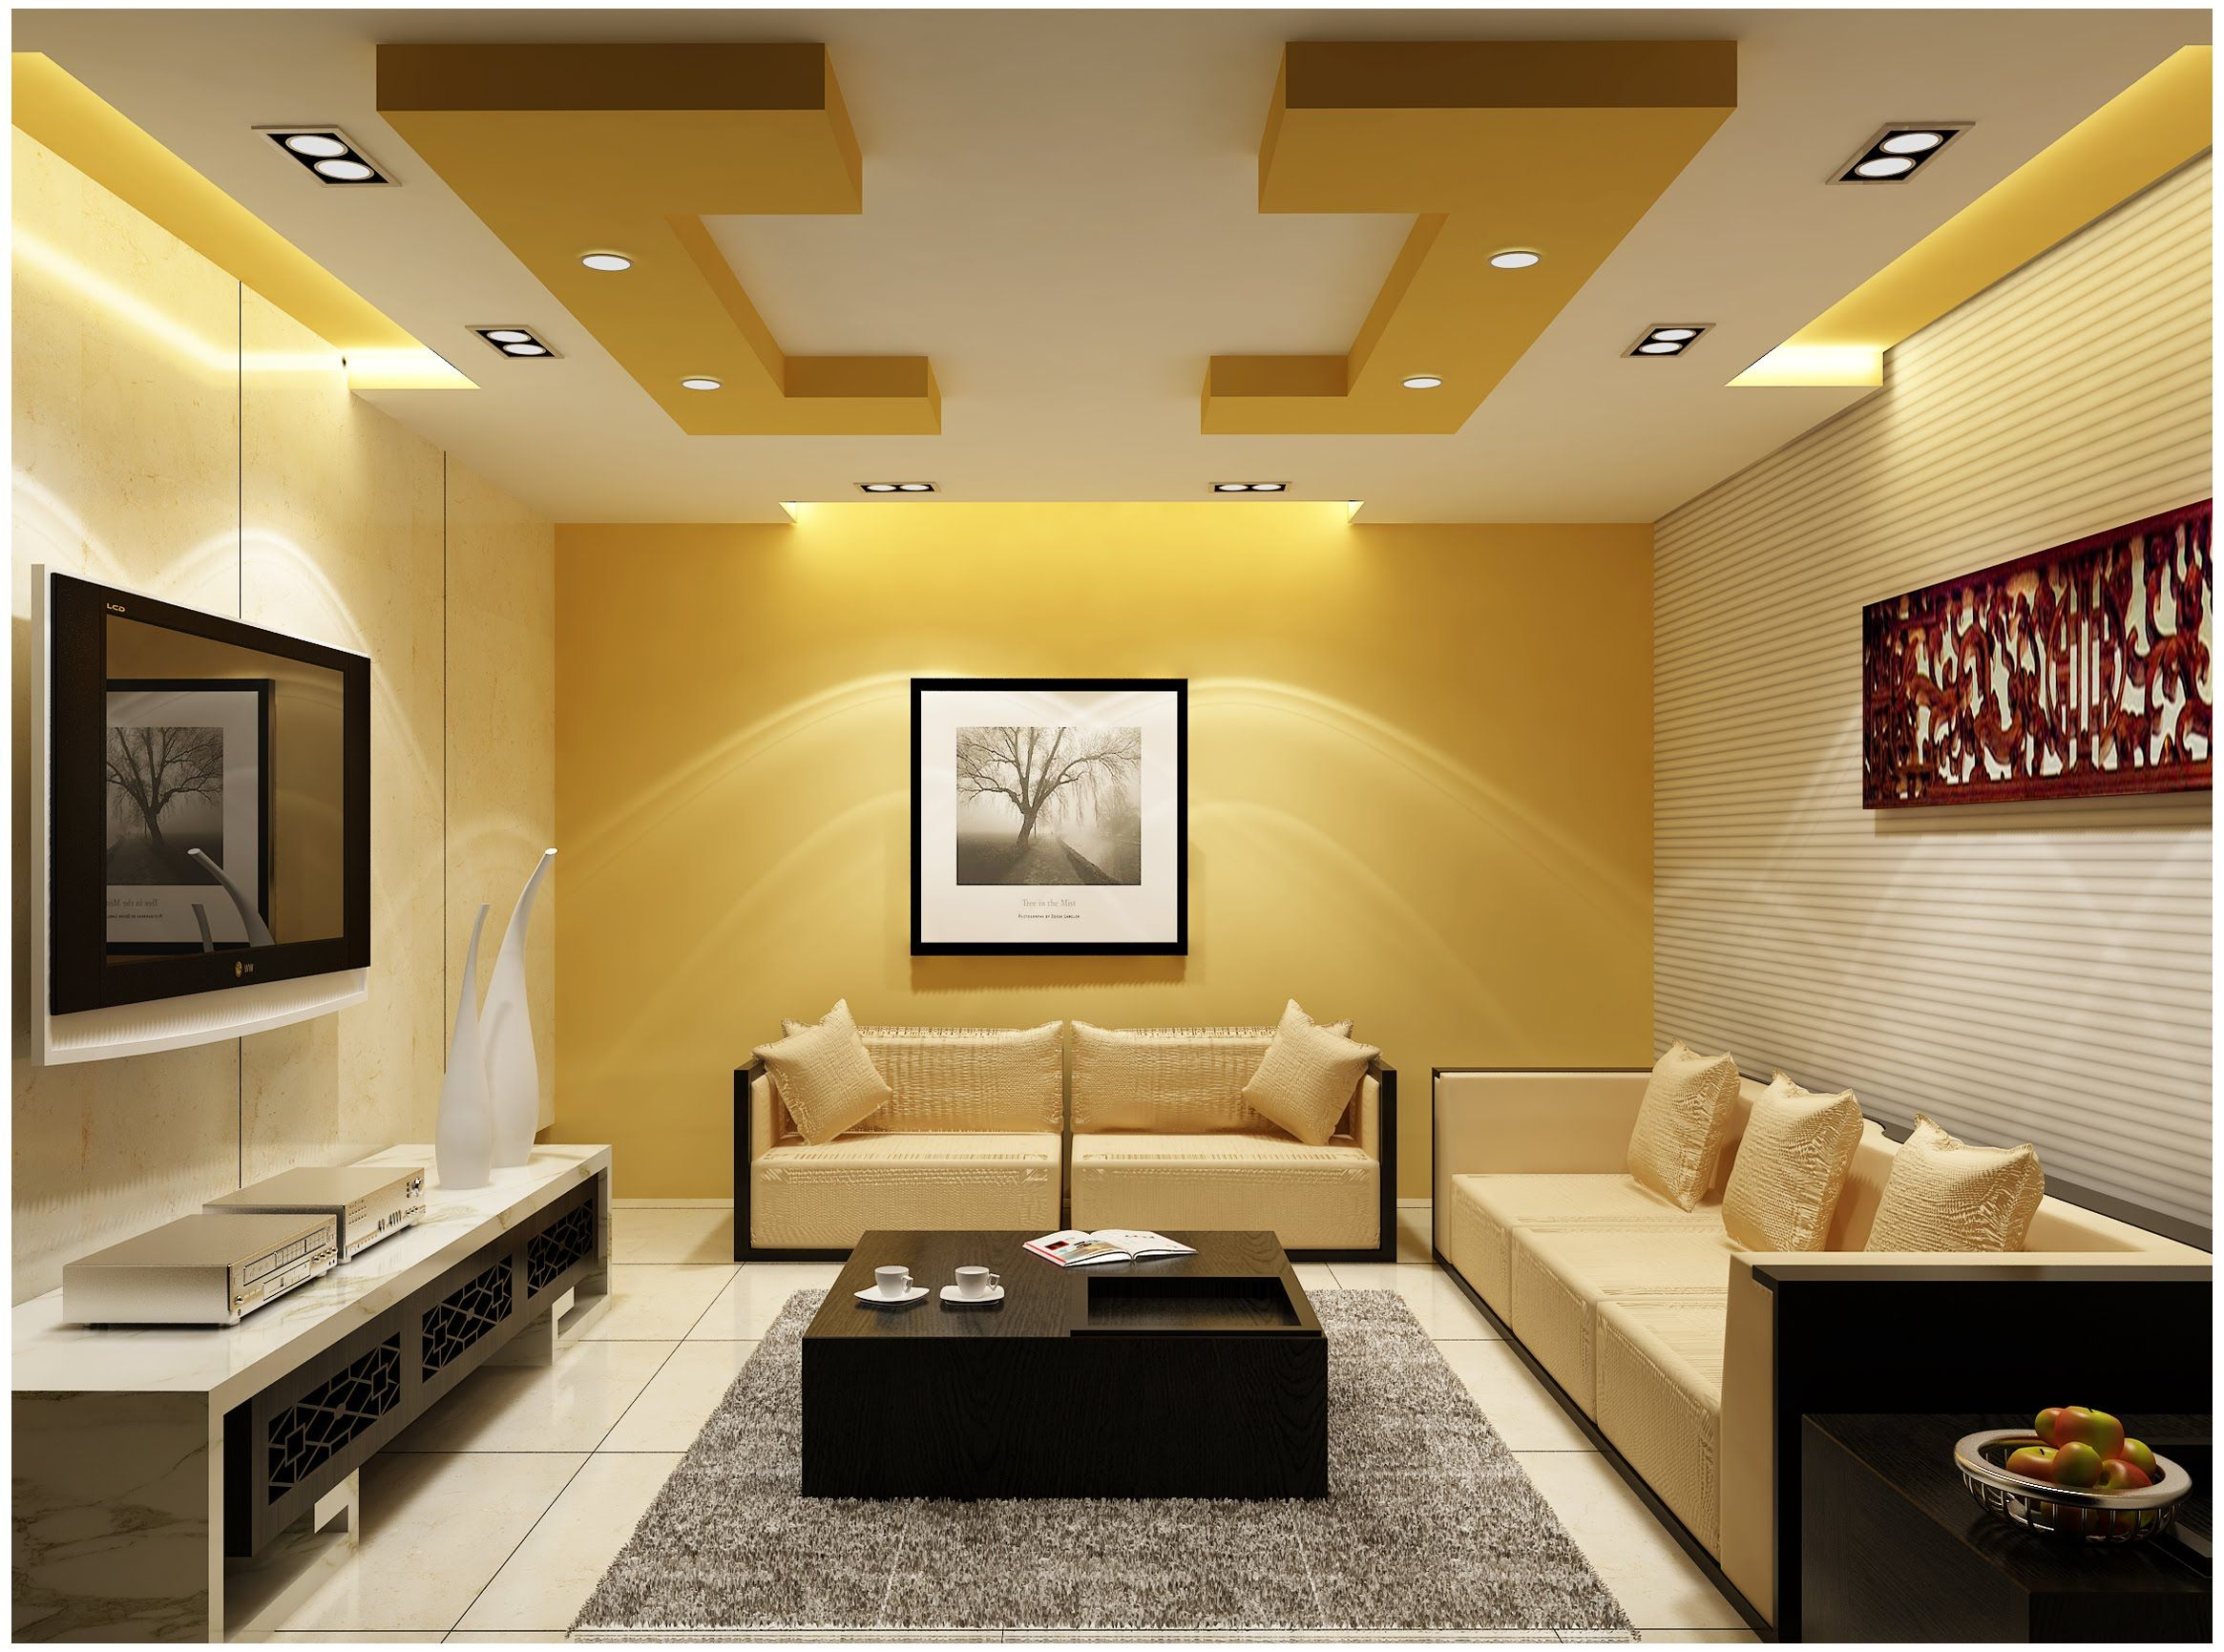 Ceiling Designs For Your Living Room Gardens Design Design And Home